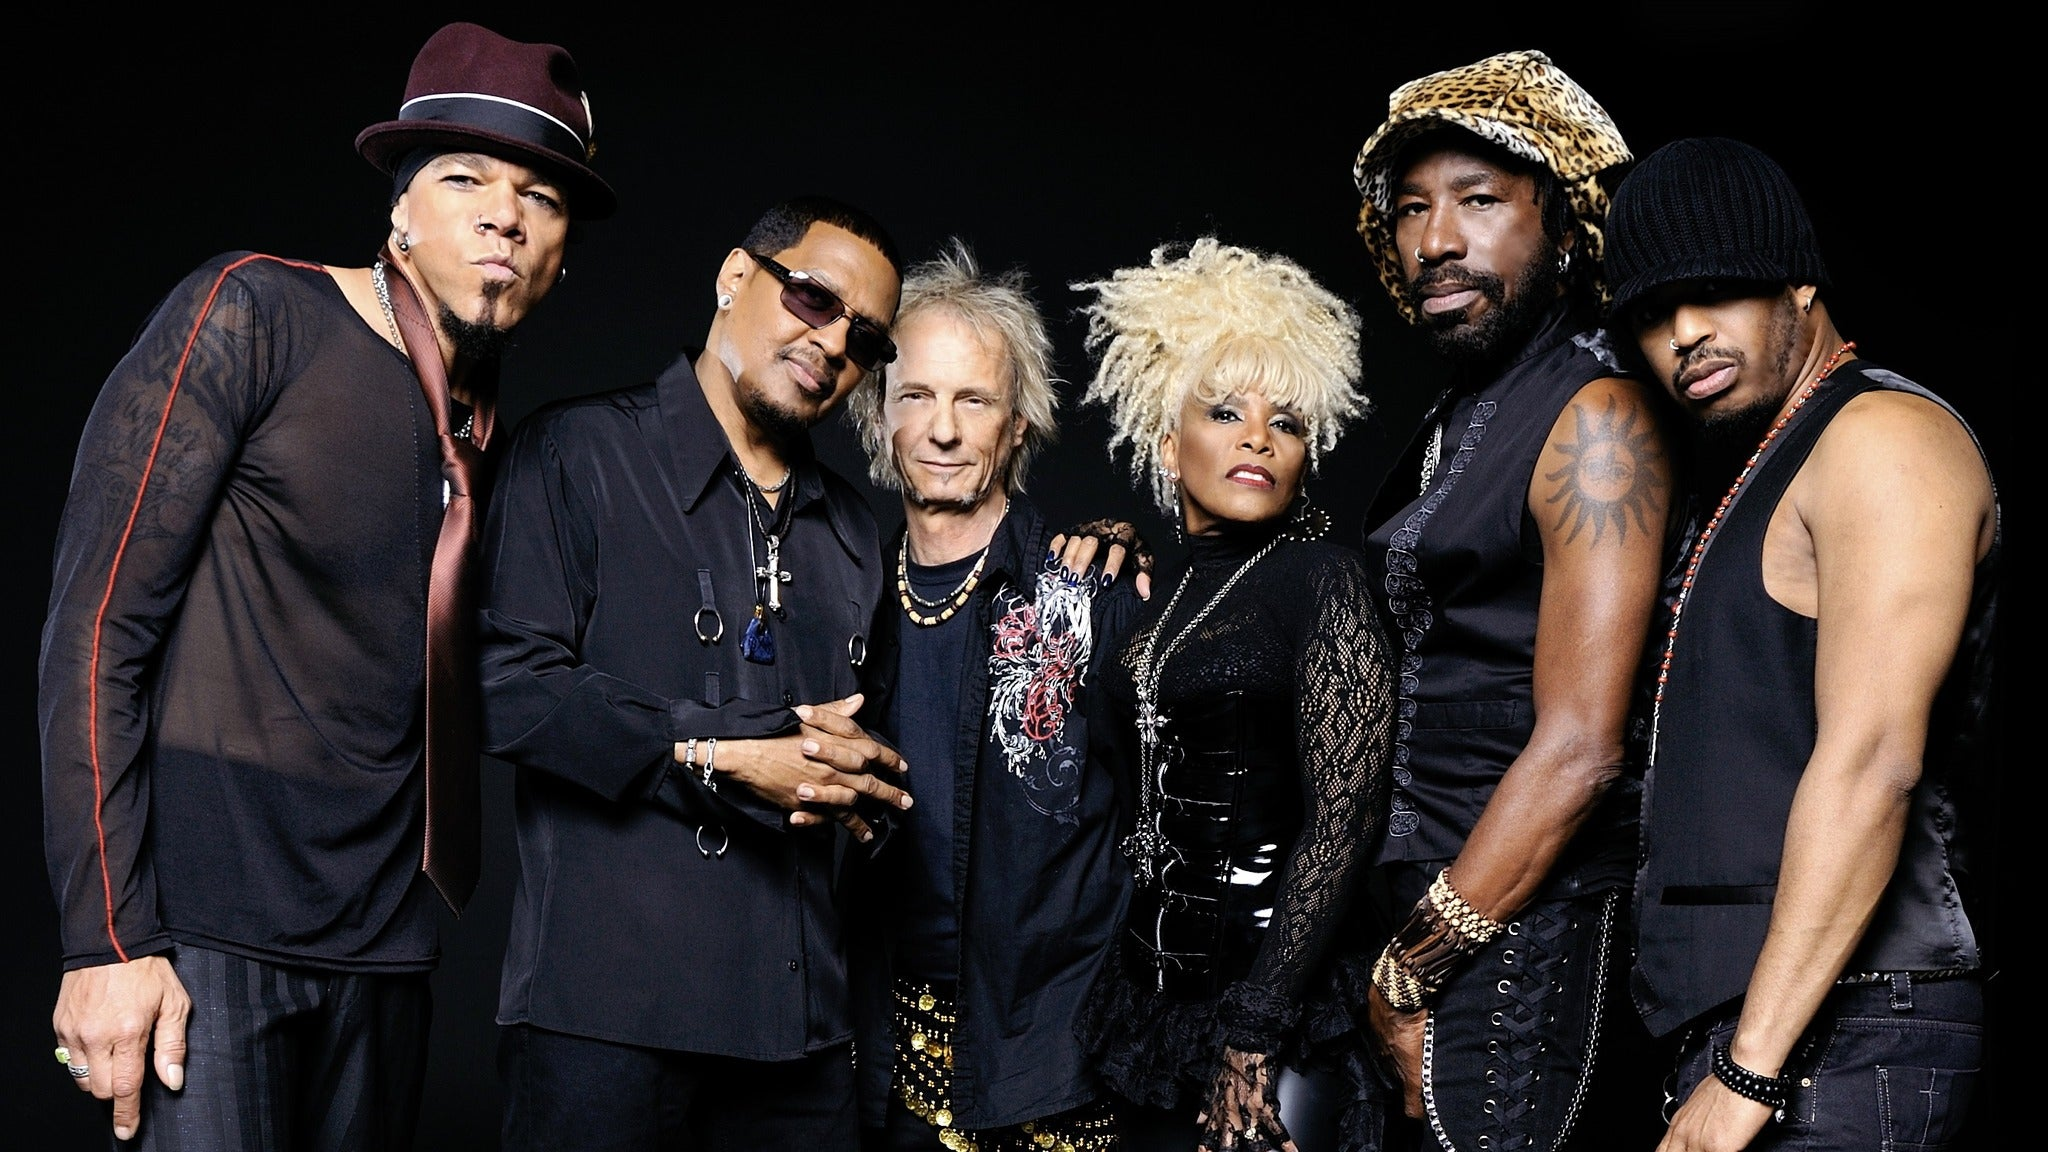 97.1 The River Presents: Mother's Finest